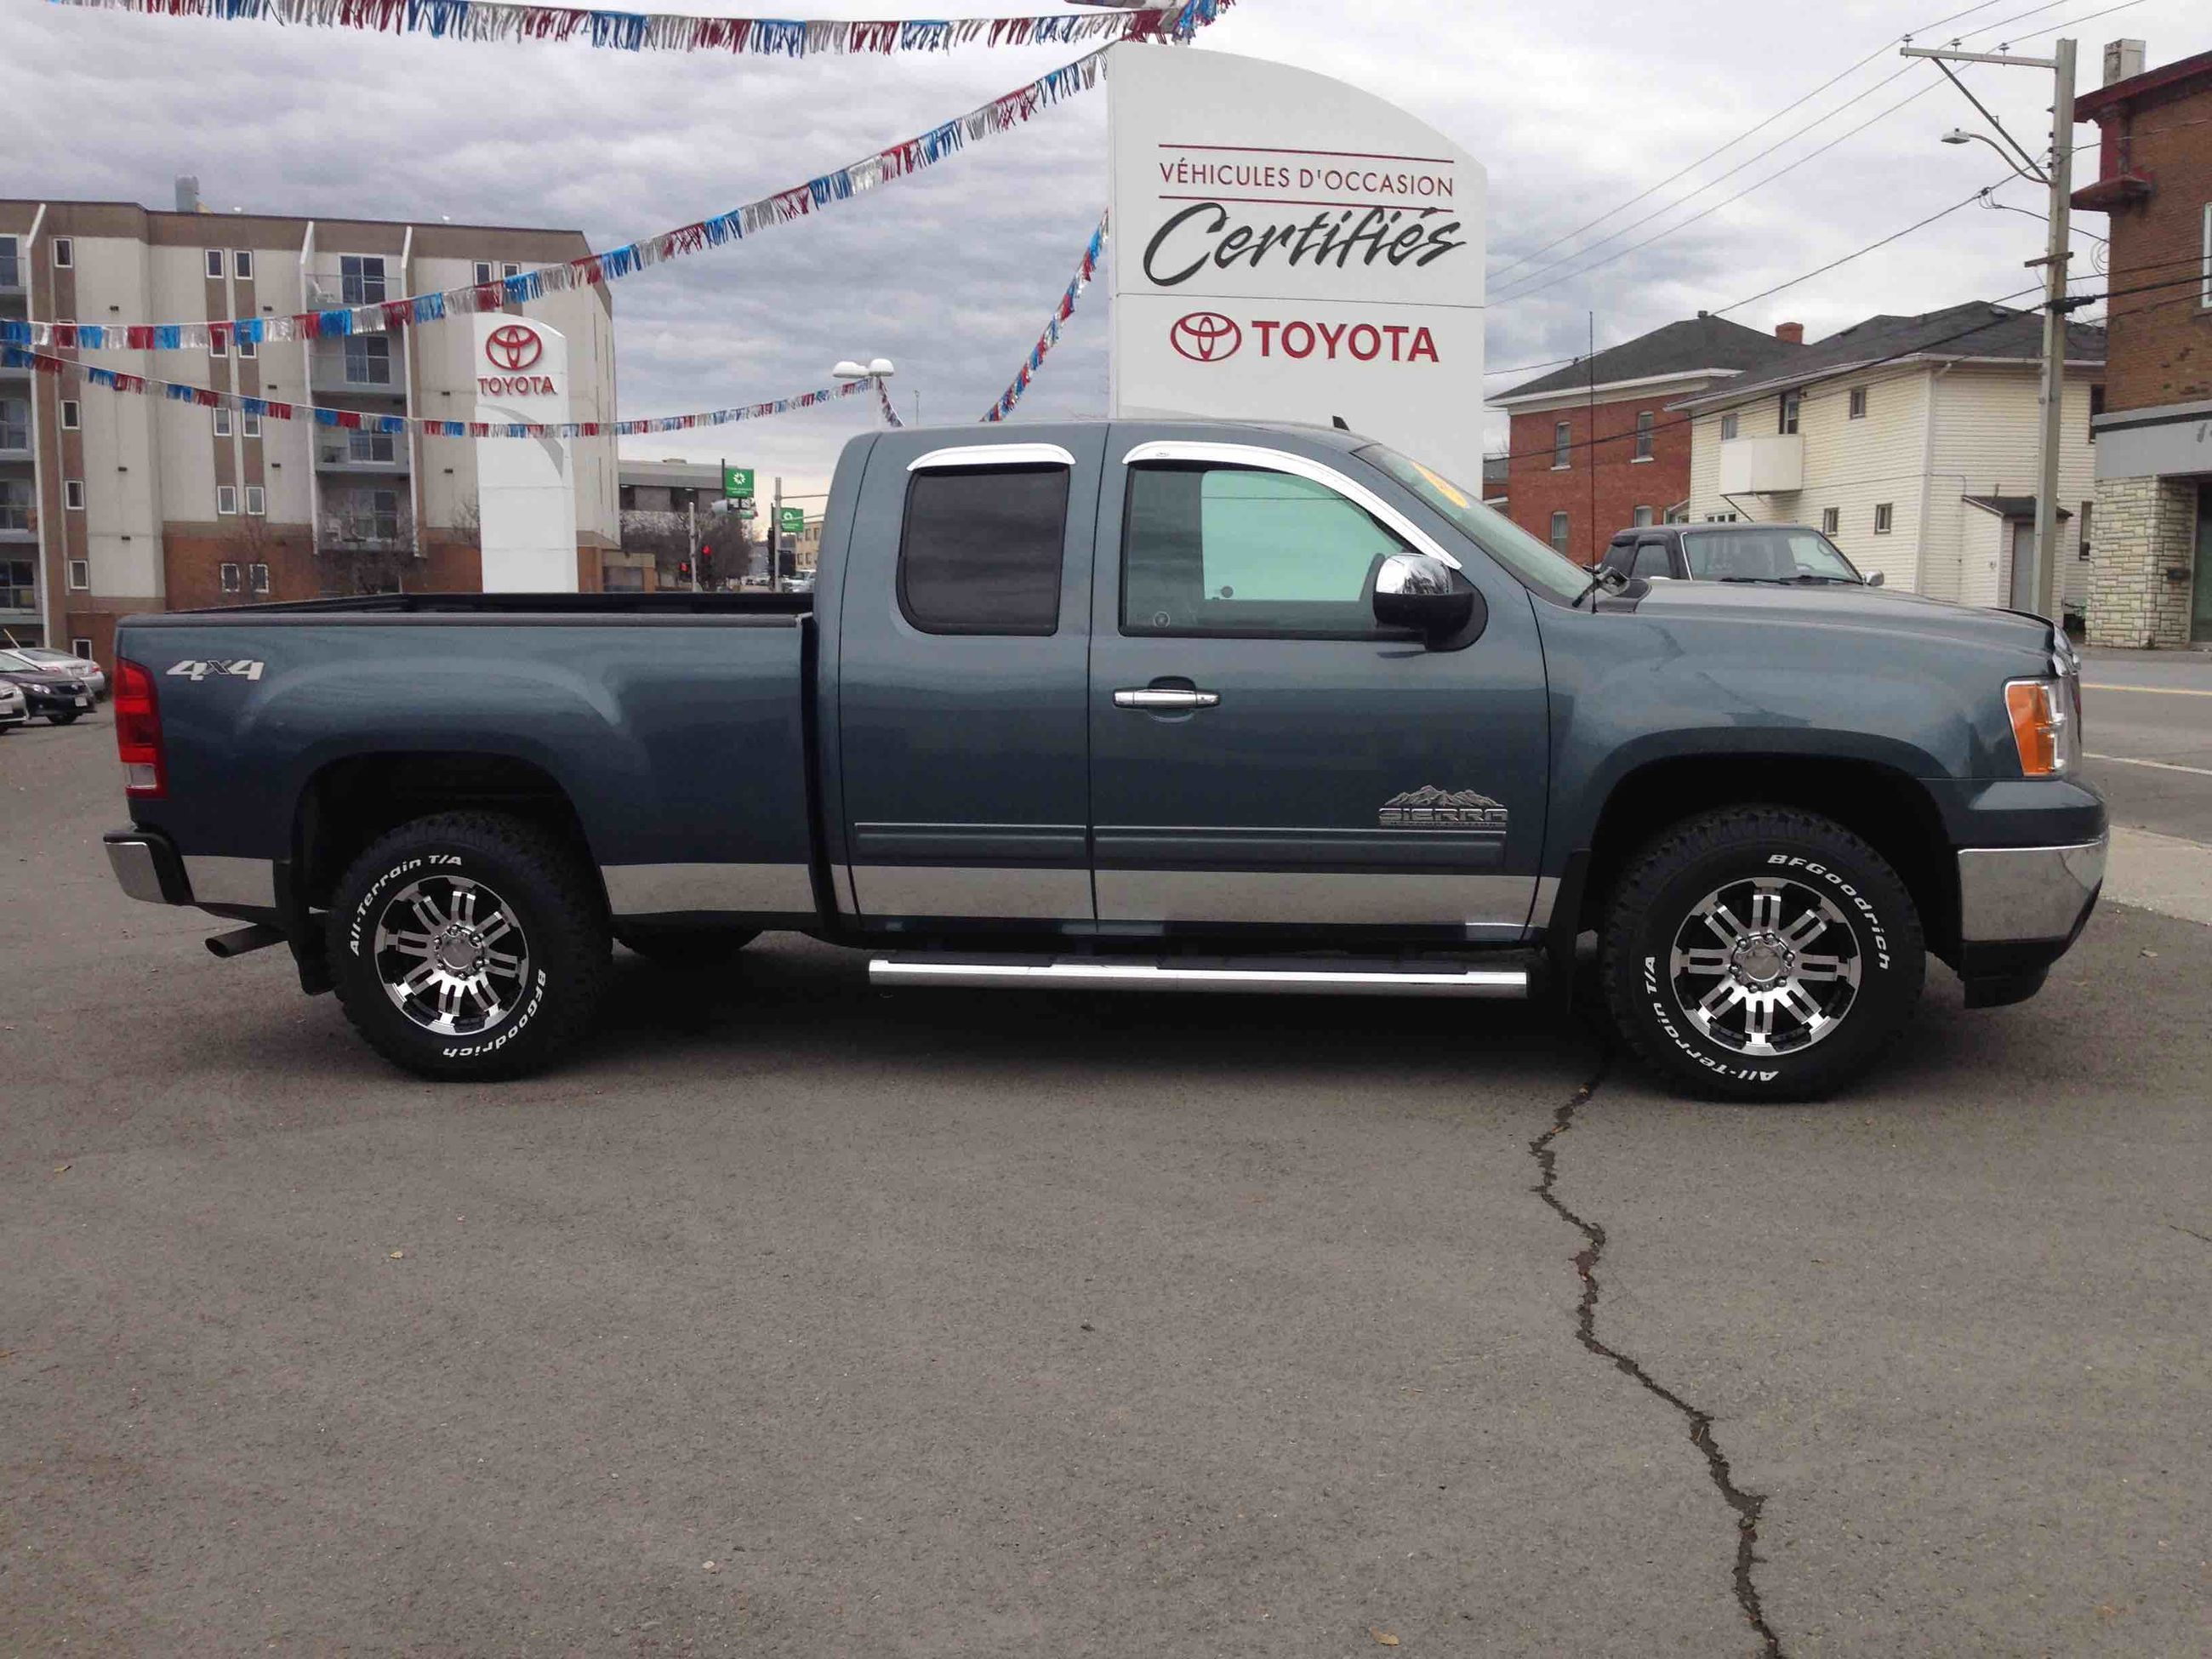 used 2012 gmc sierra 1500 sl nevada edition to sale for 25 in edmundston used inventory. Black Bedroom Furniture Sets. Home Design Ideas